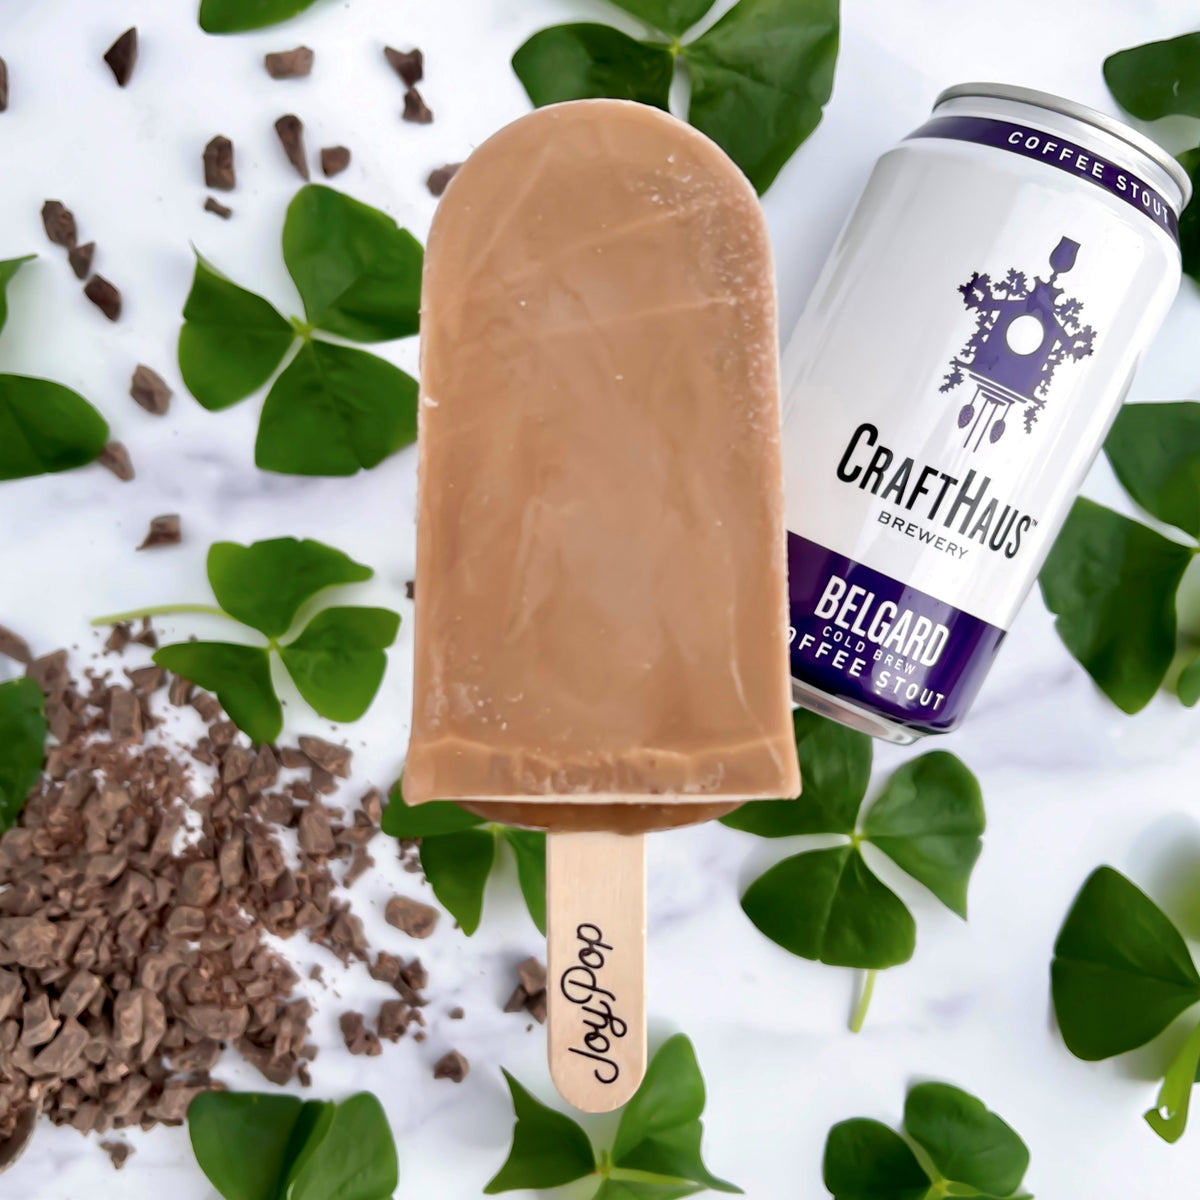 Belgard Chocolate Stout Frozen Pop by The Joy Pop Co with chocolate pieces, clovers and a belgard coffee stout CraftHaus can on a white marble background